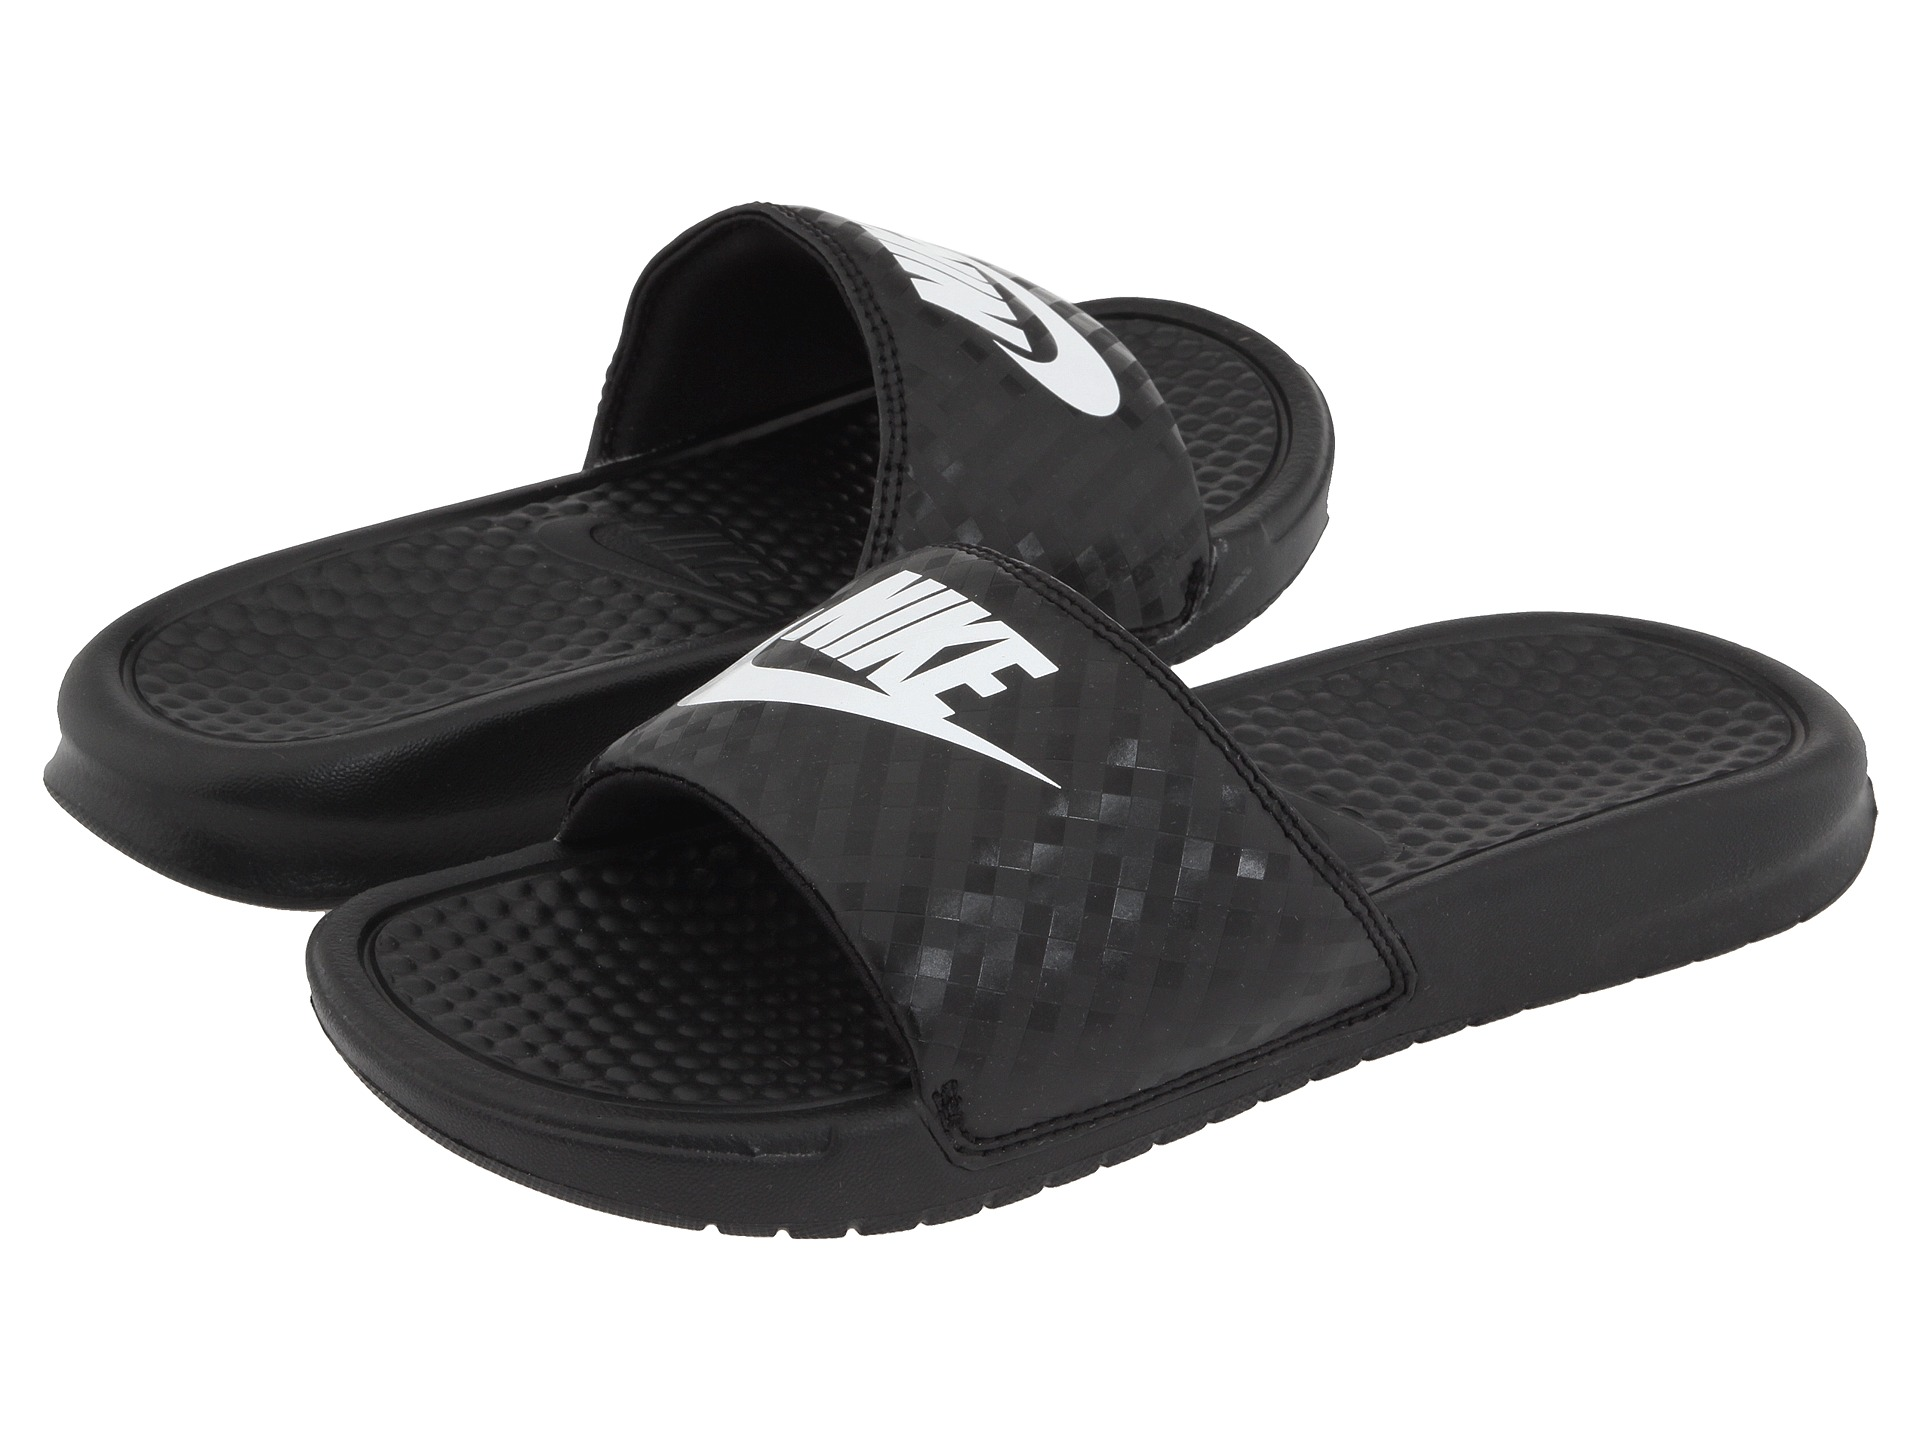 Innovative Shoes Slide Shoes Adidas Adidas Slides Slide Shoes